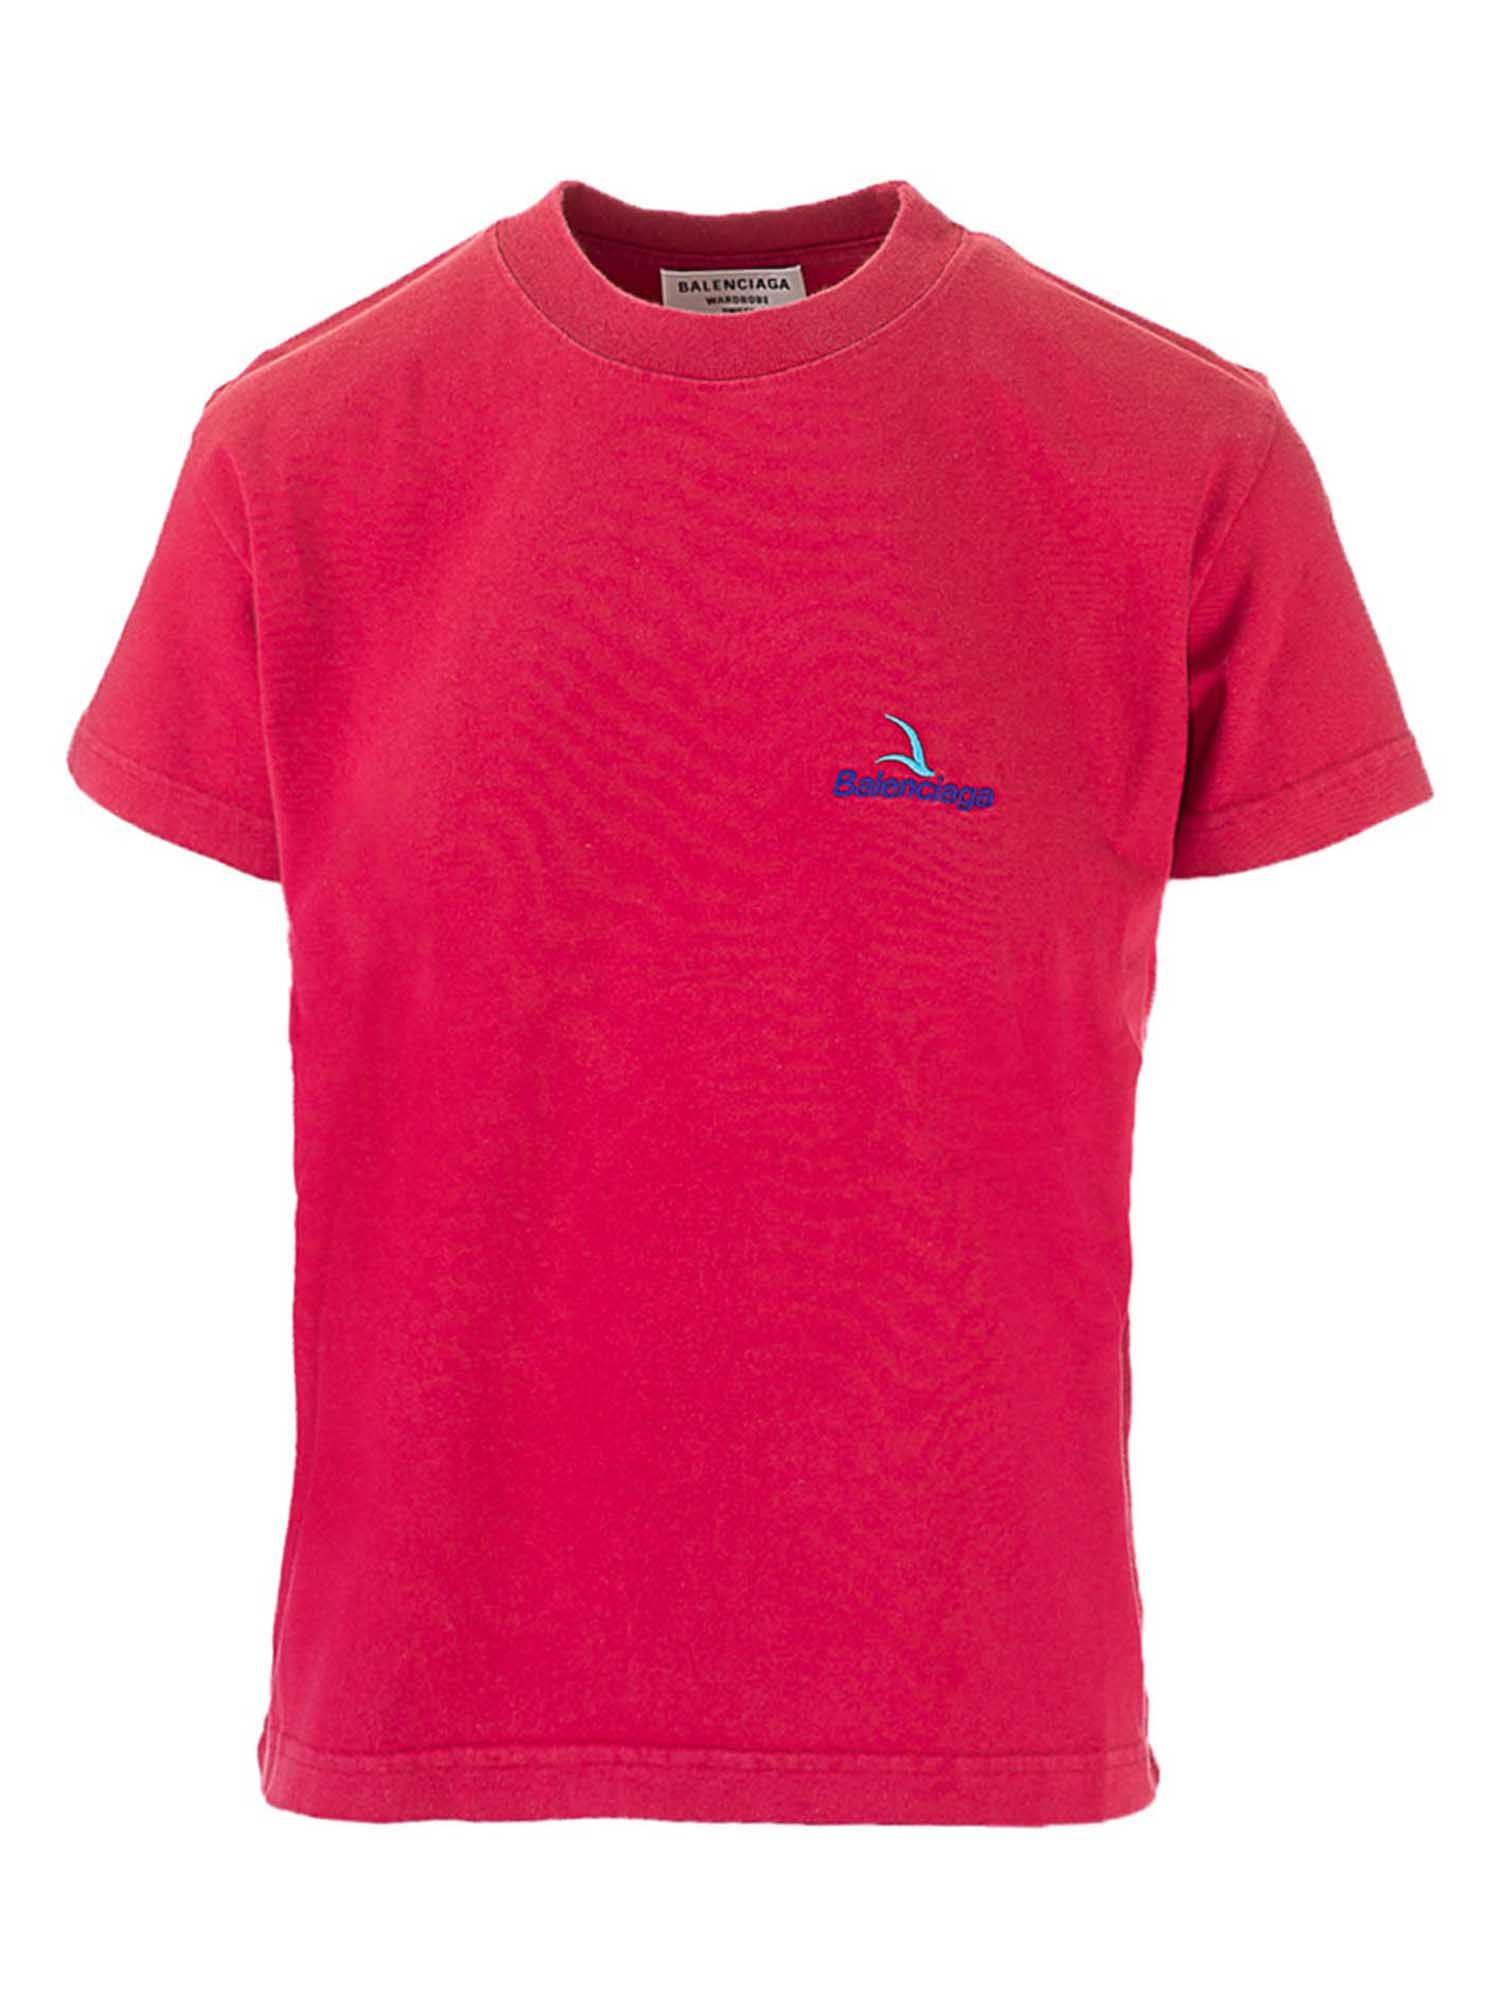 Balenciaga Clothing EMBROIDERED LOGO T-SHIRT IN RED